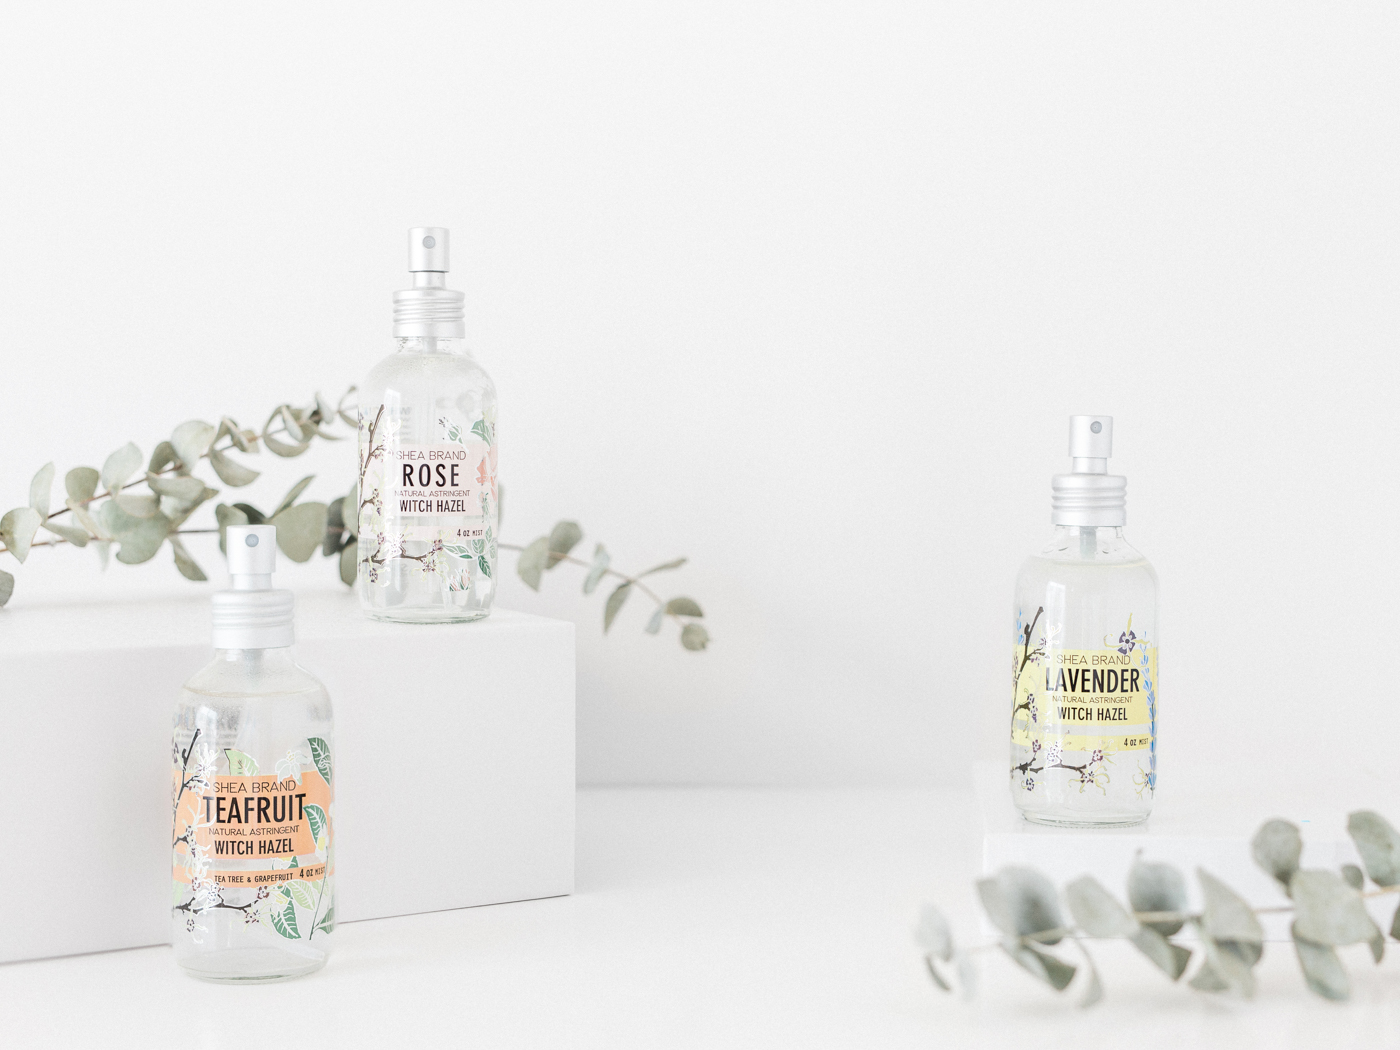 Voyage + Heart - Shea Brand - Product Photographers for Skincare Brands - Luxury Skincare Product Photography - E Commerce Photography for Organic Skincare Brands - Commercial Photographers for CBD Brands